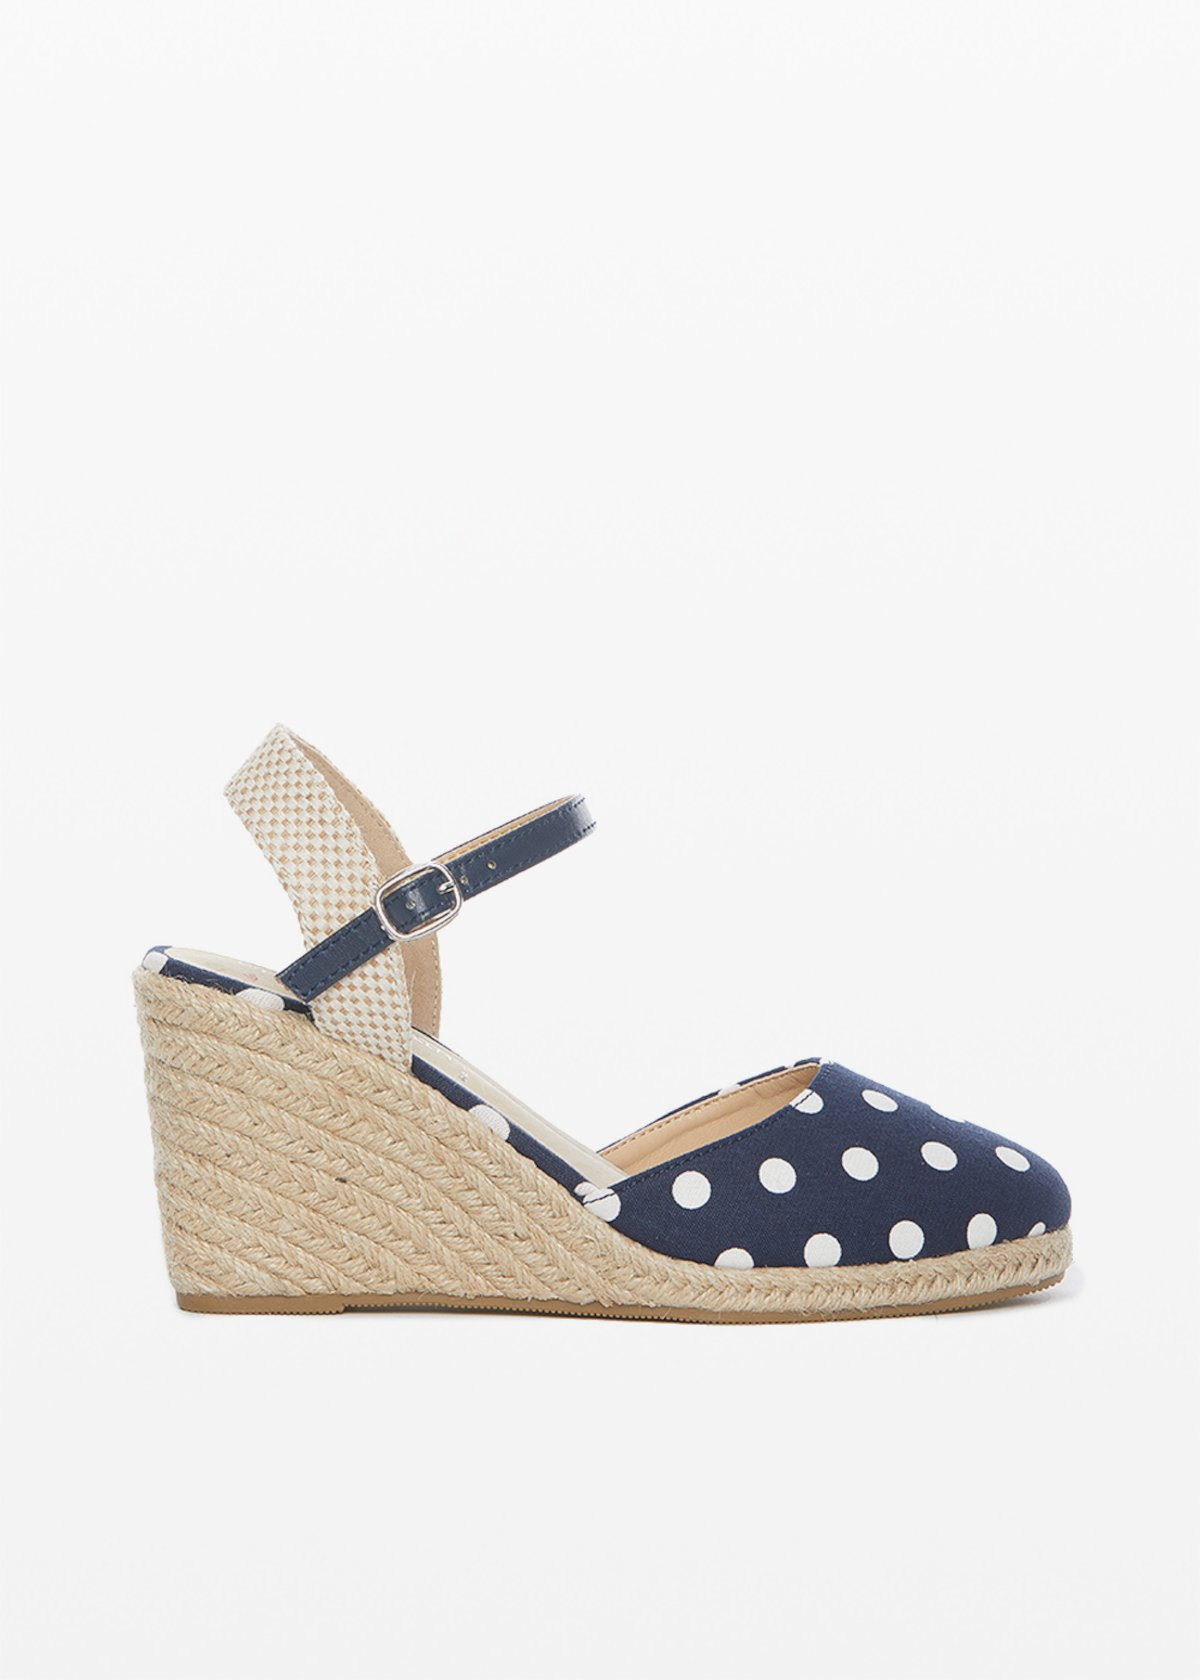 Sirya sandals Polka dot pattern and wedge - Dark Blue Pois - Woman - Category image